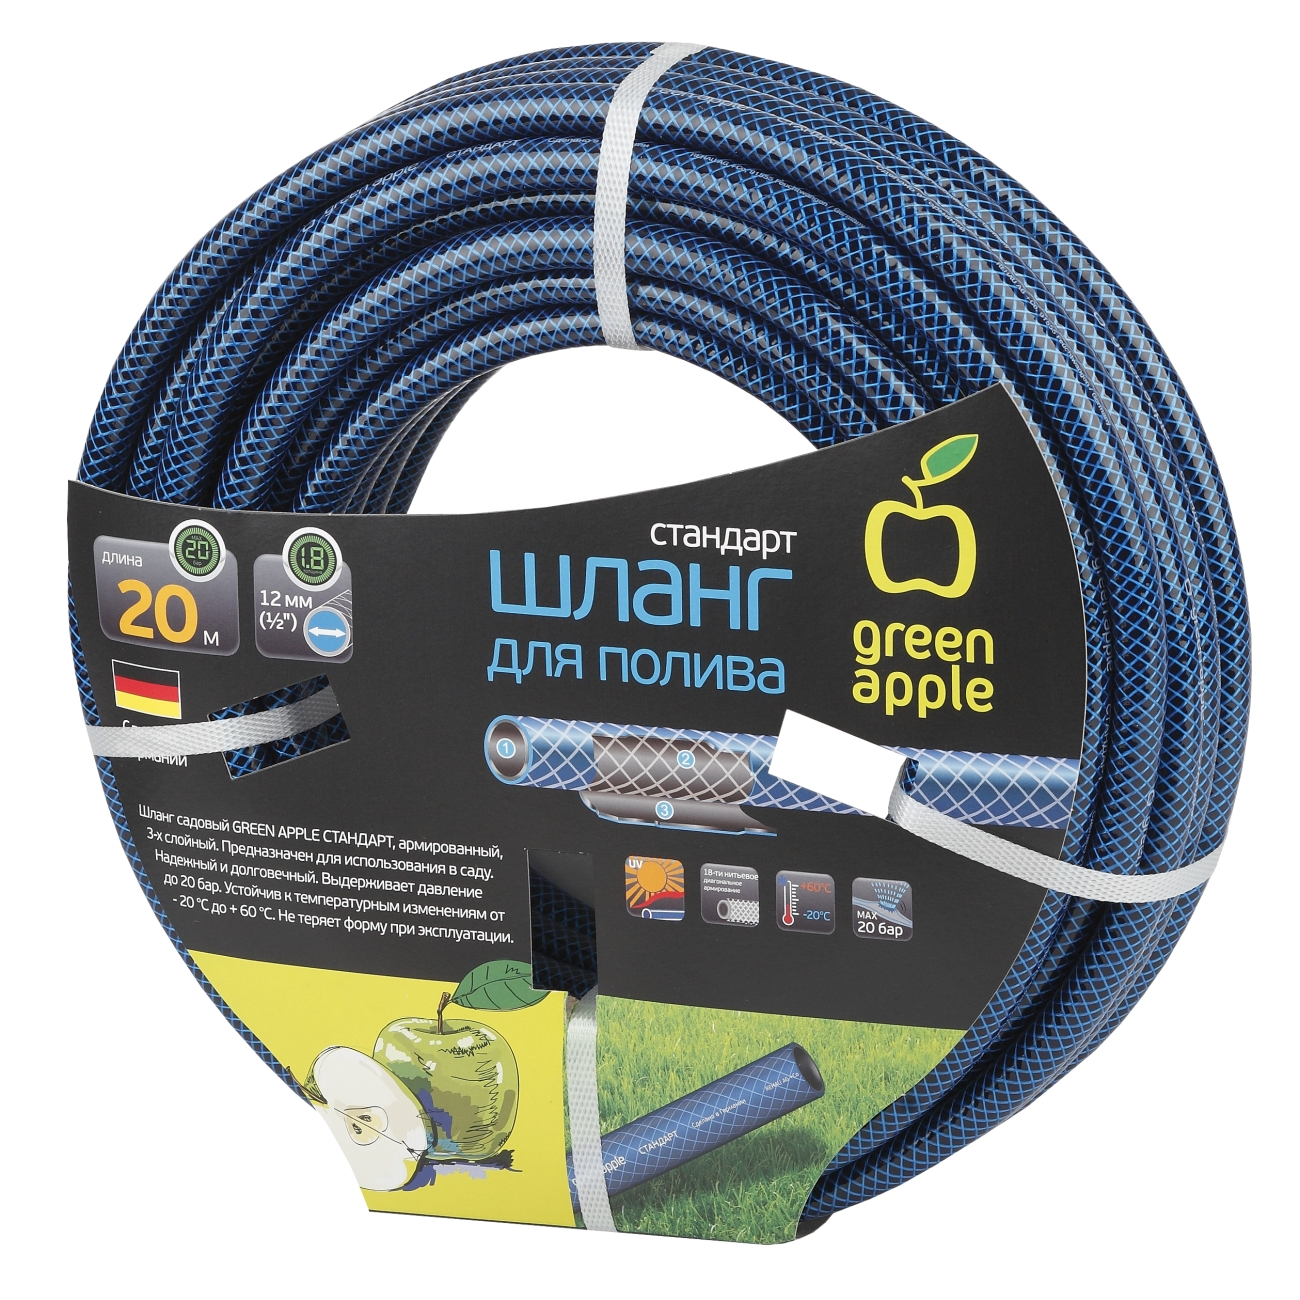 Фото - Hose поливочный GREEN APPLE GWGH1-028 (diameter 2mm (1/2 \ ) length 20 m reinforced, 3-х layer) standard usb 3 0 a male am to usb 3 0 a female af usb3 0 extension cable 0 3 m 0 6 m 1 m 1 5 m 1 8m 3m 1ft 2ft 3ft 5ft 6ft 10ft